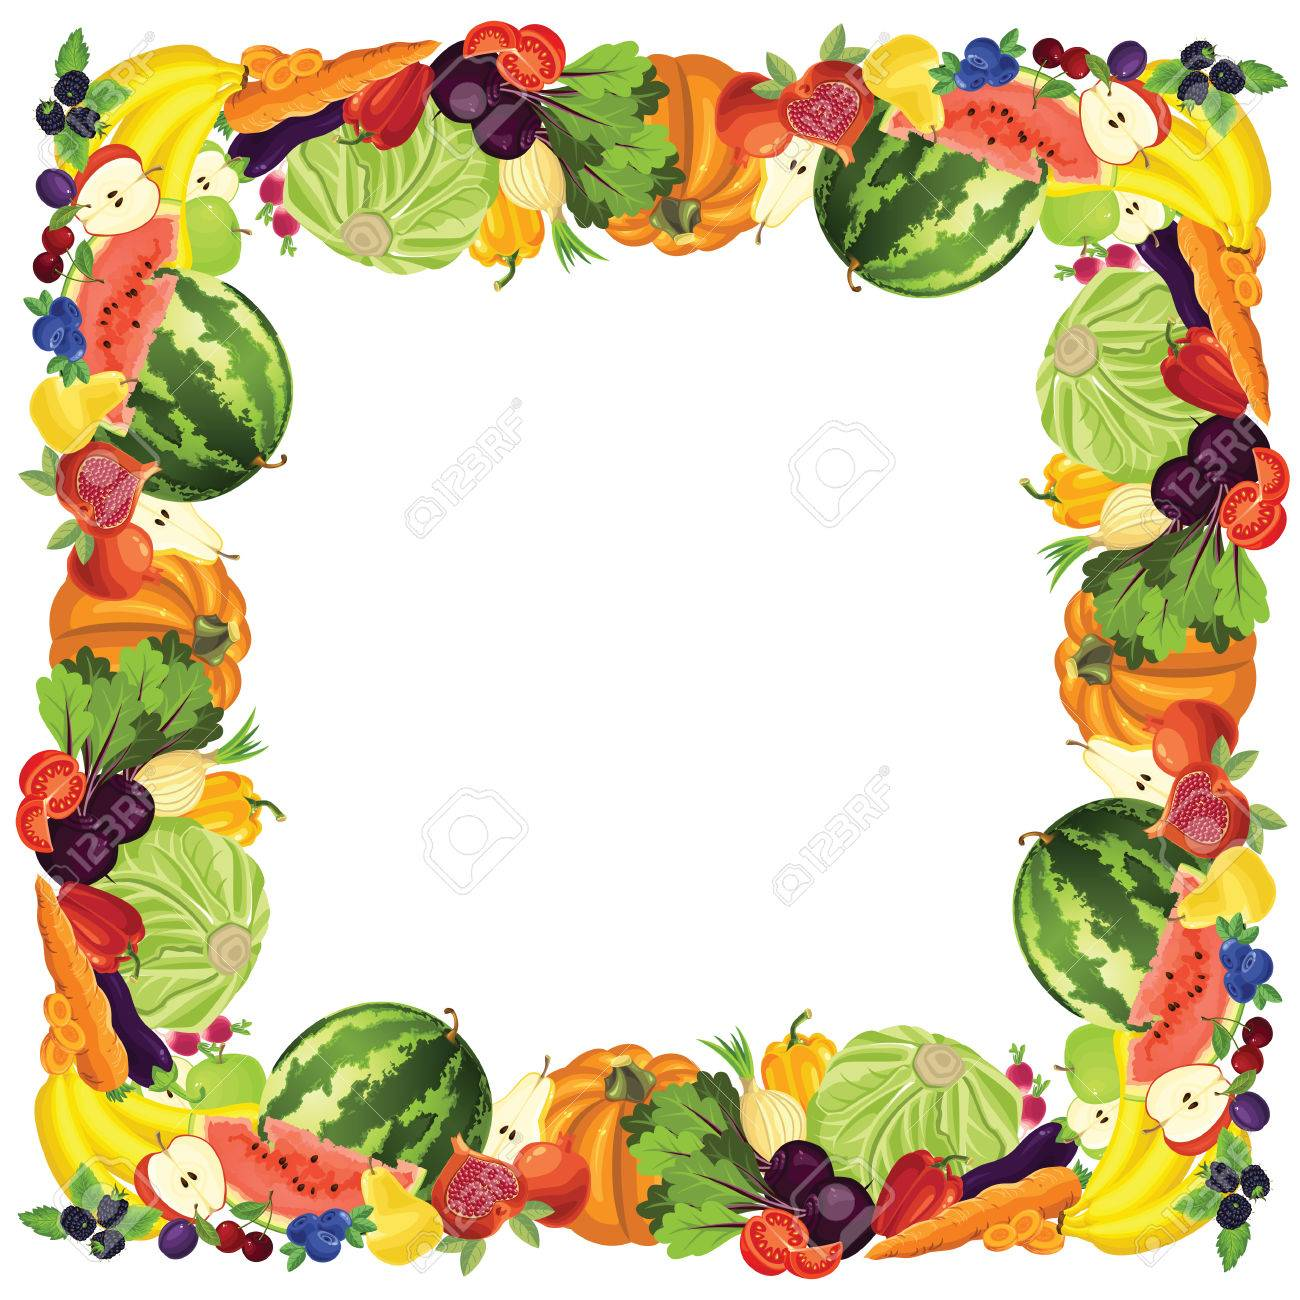 1300x1300 Border With Ripe Vegetable, Fruits And Berry Royalty Free Cliparts